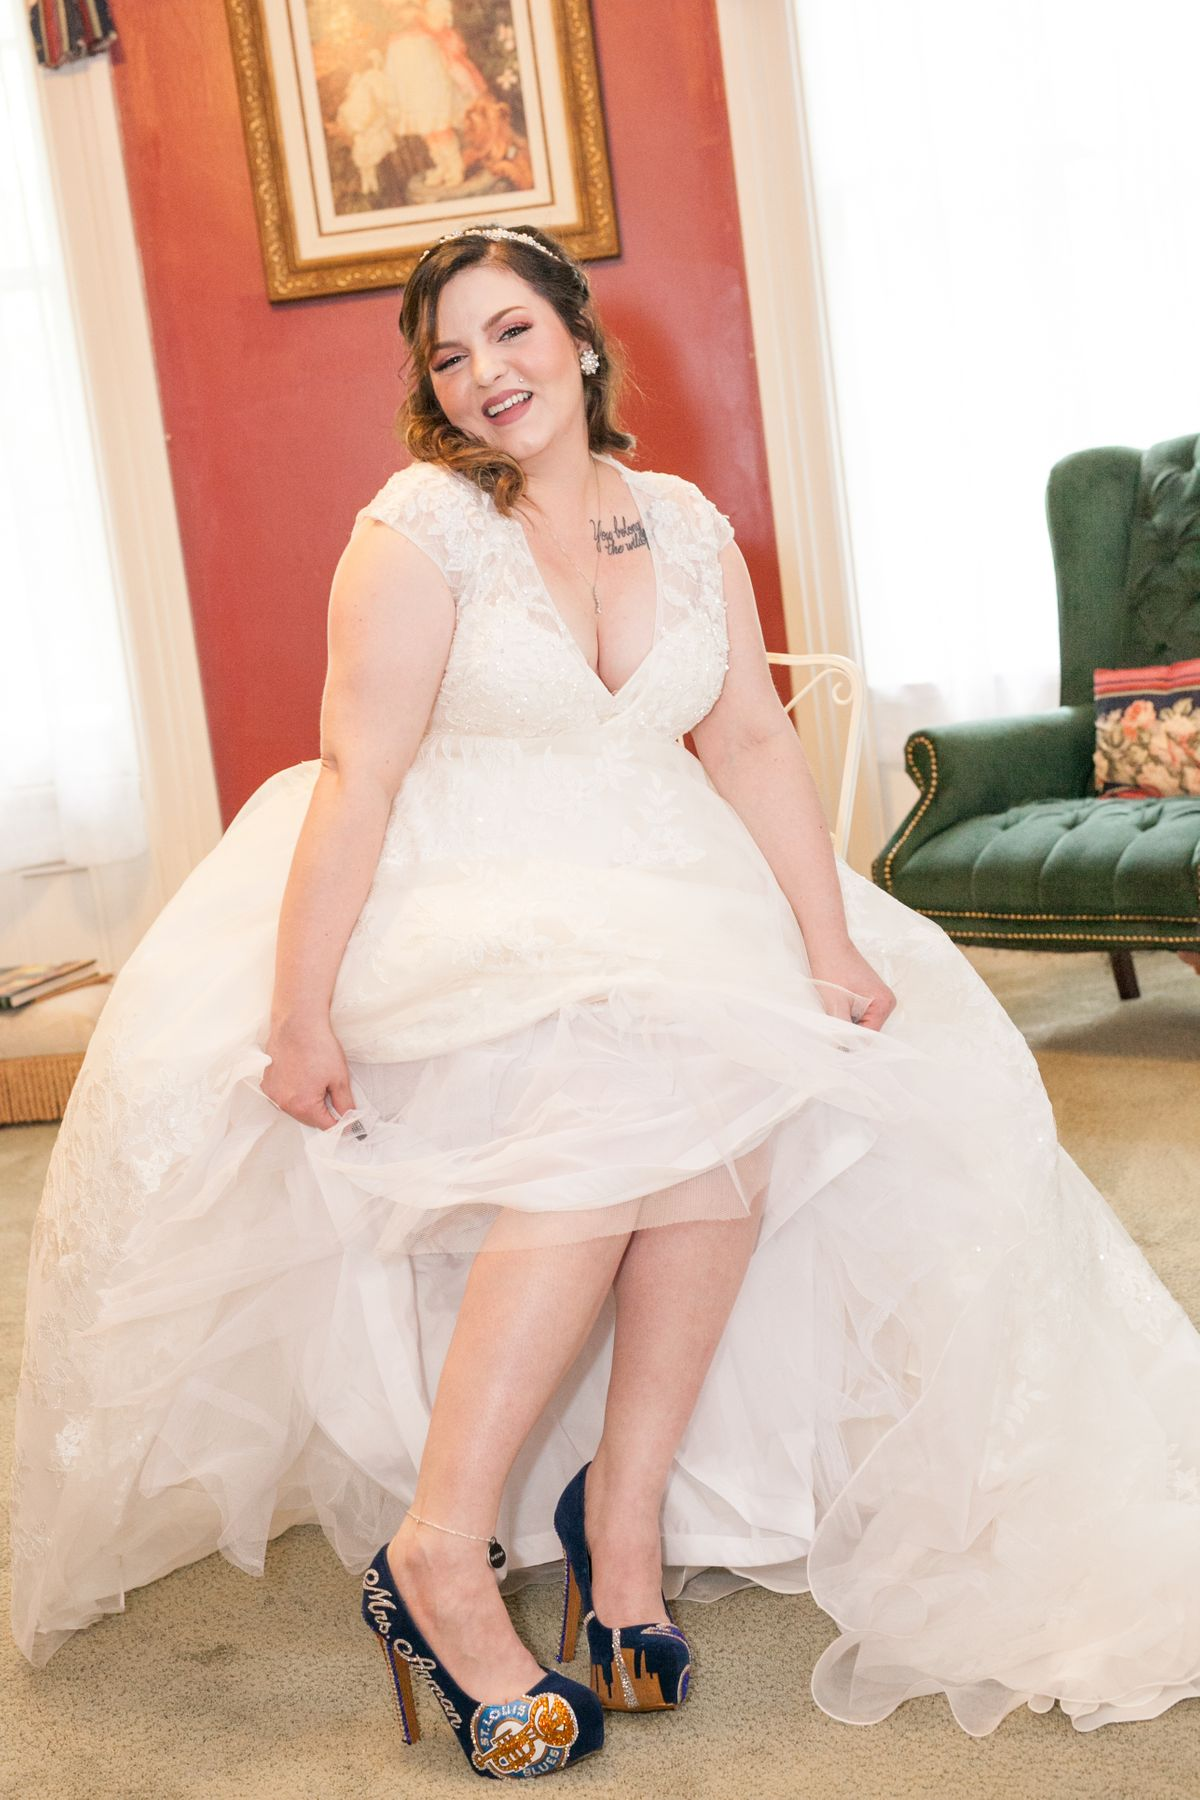 Smiling Bride in the Bridal Dressing Suit.